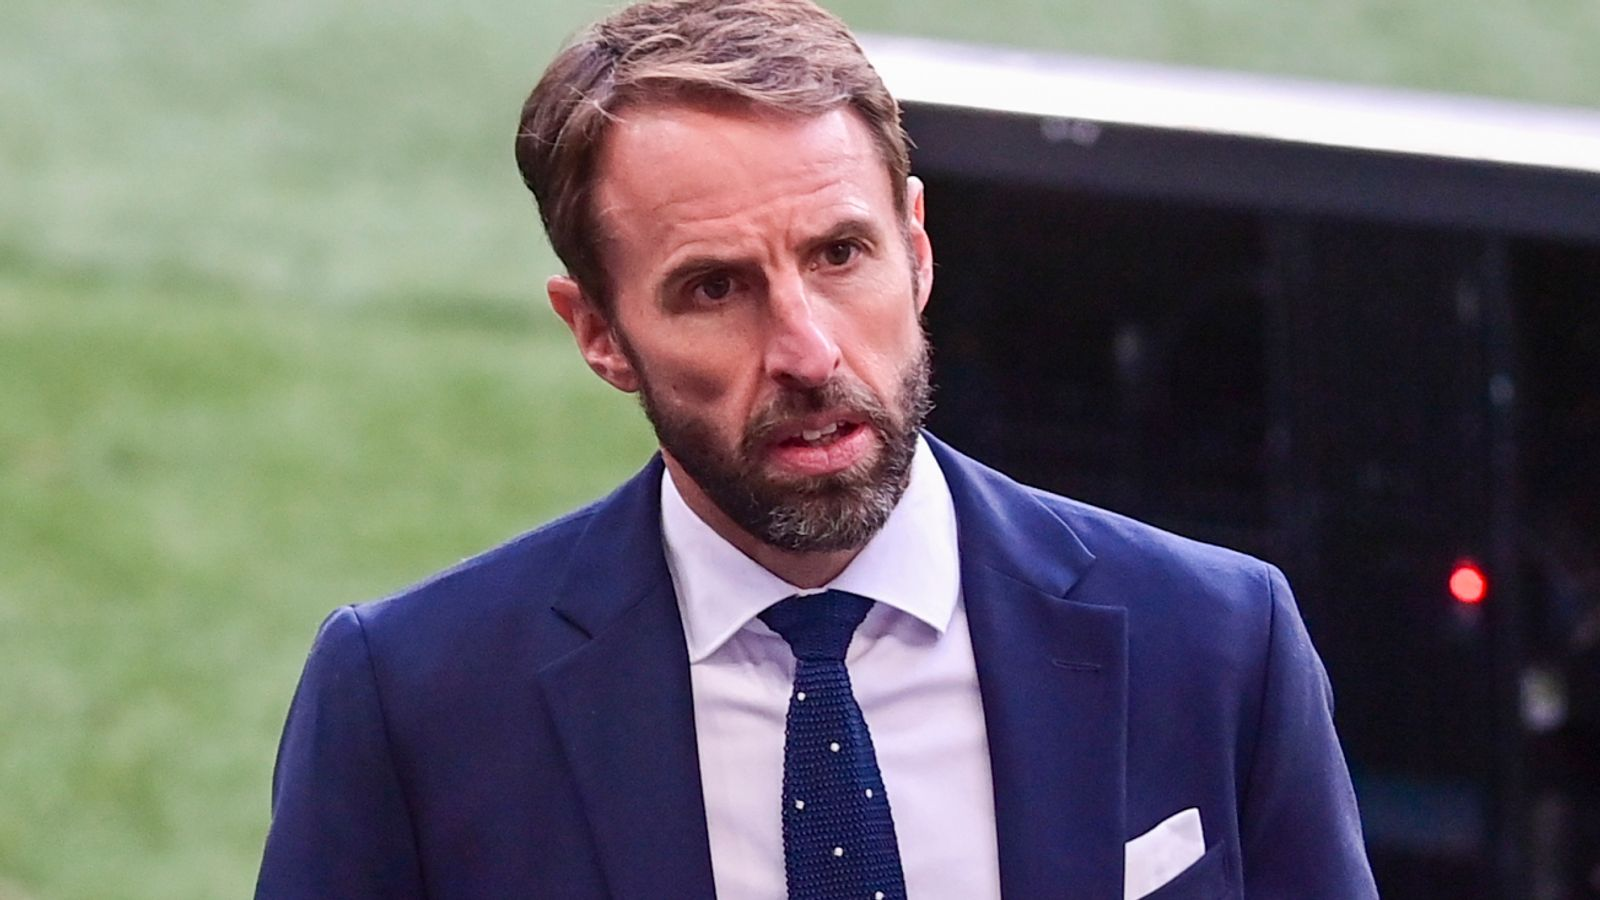 Gareth Southgate: England manager says he suffered abuse for supporting Covid vaccine programme